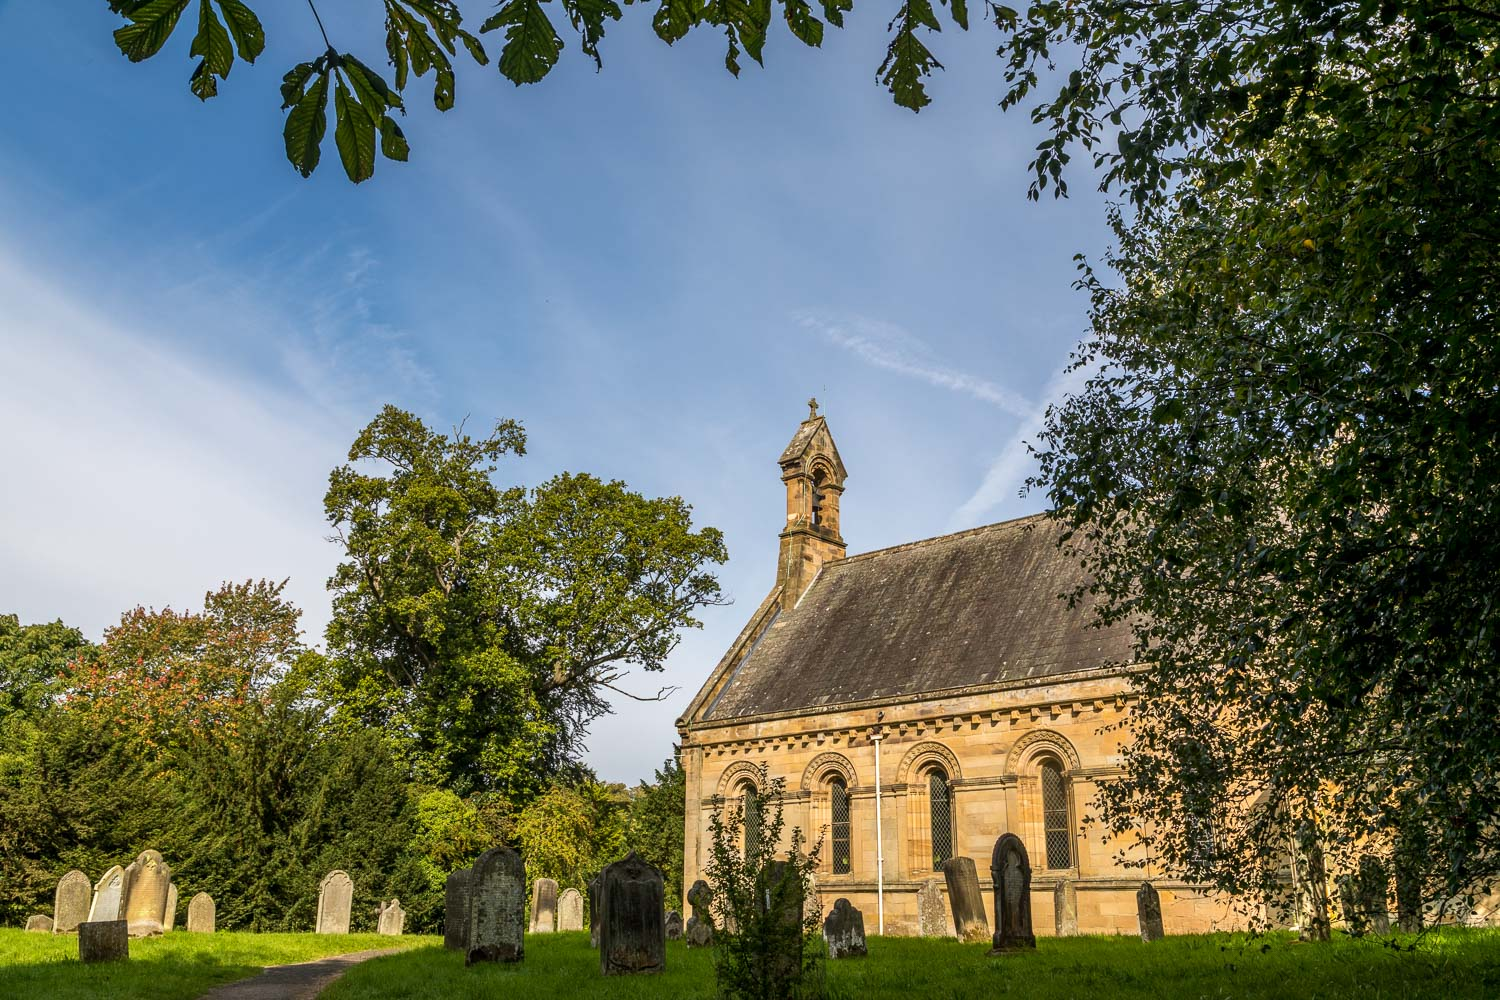 St Michael and All Angels, Howick